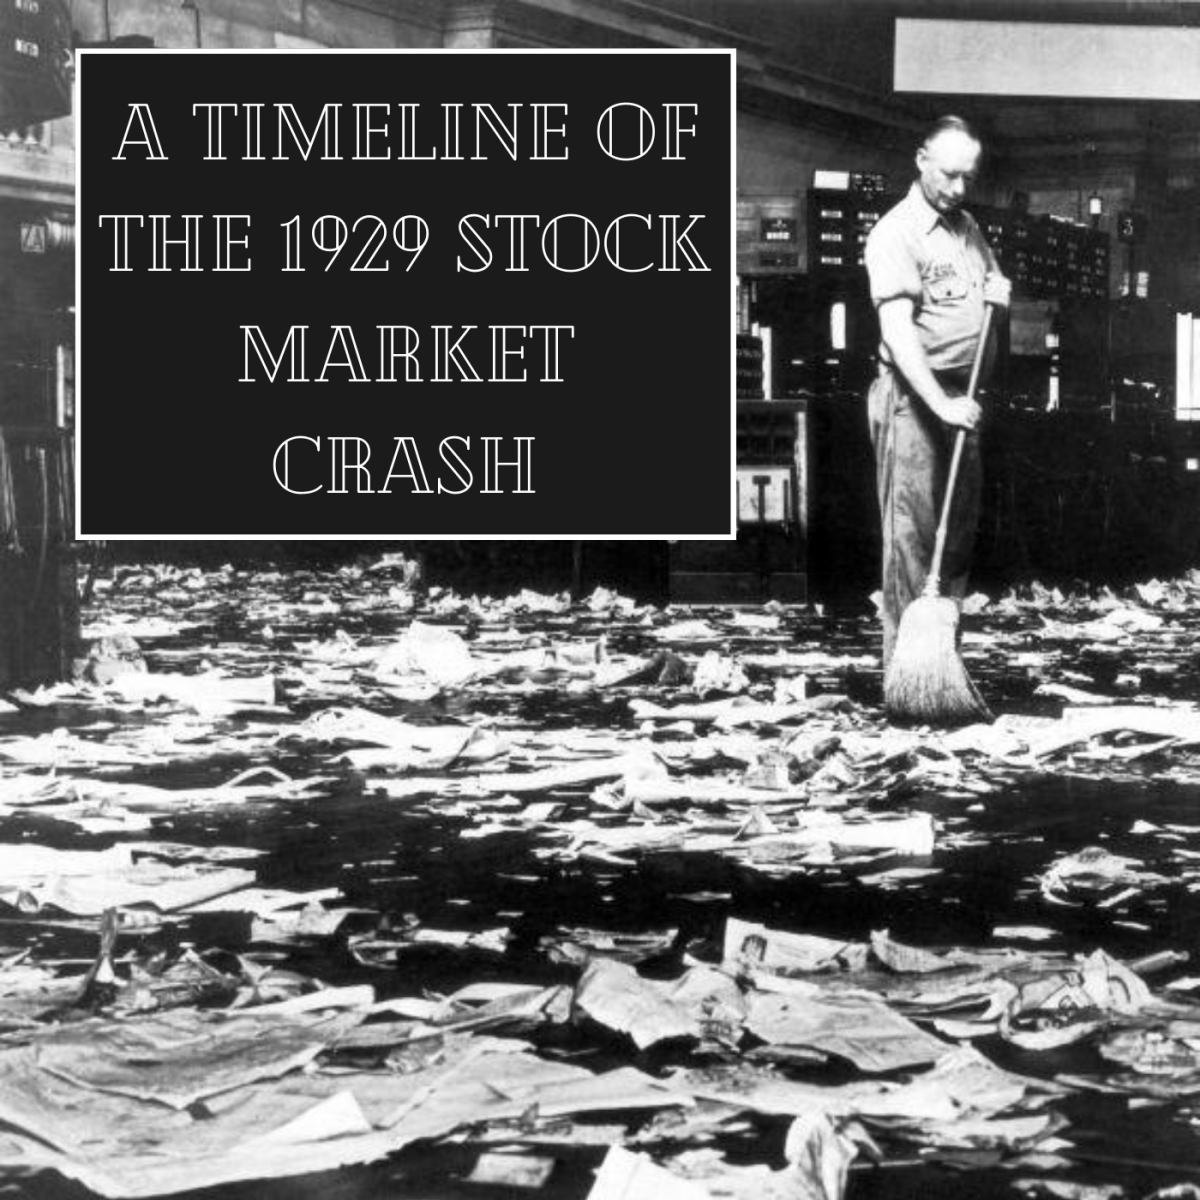 In 1929, the U.S. stock market experienced its greatest crash in history.